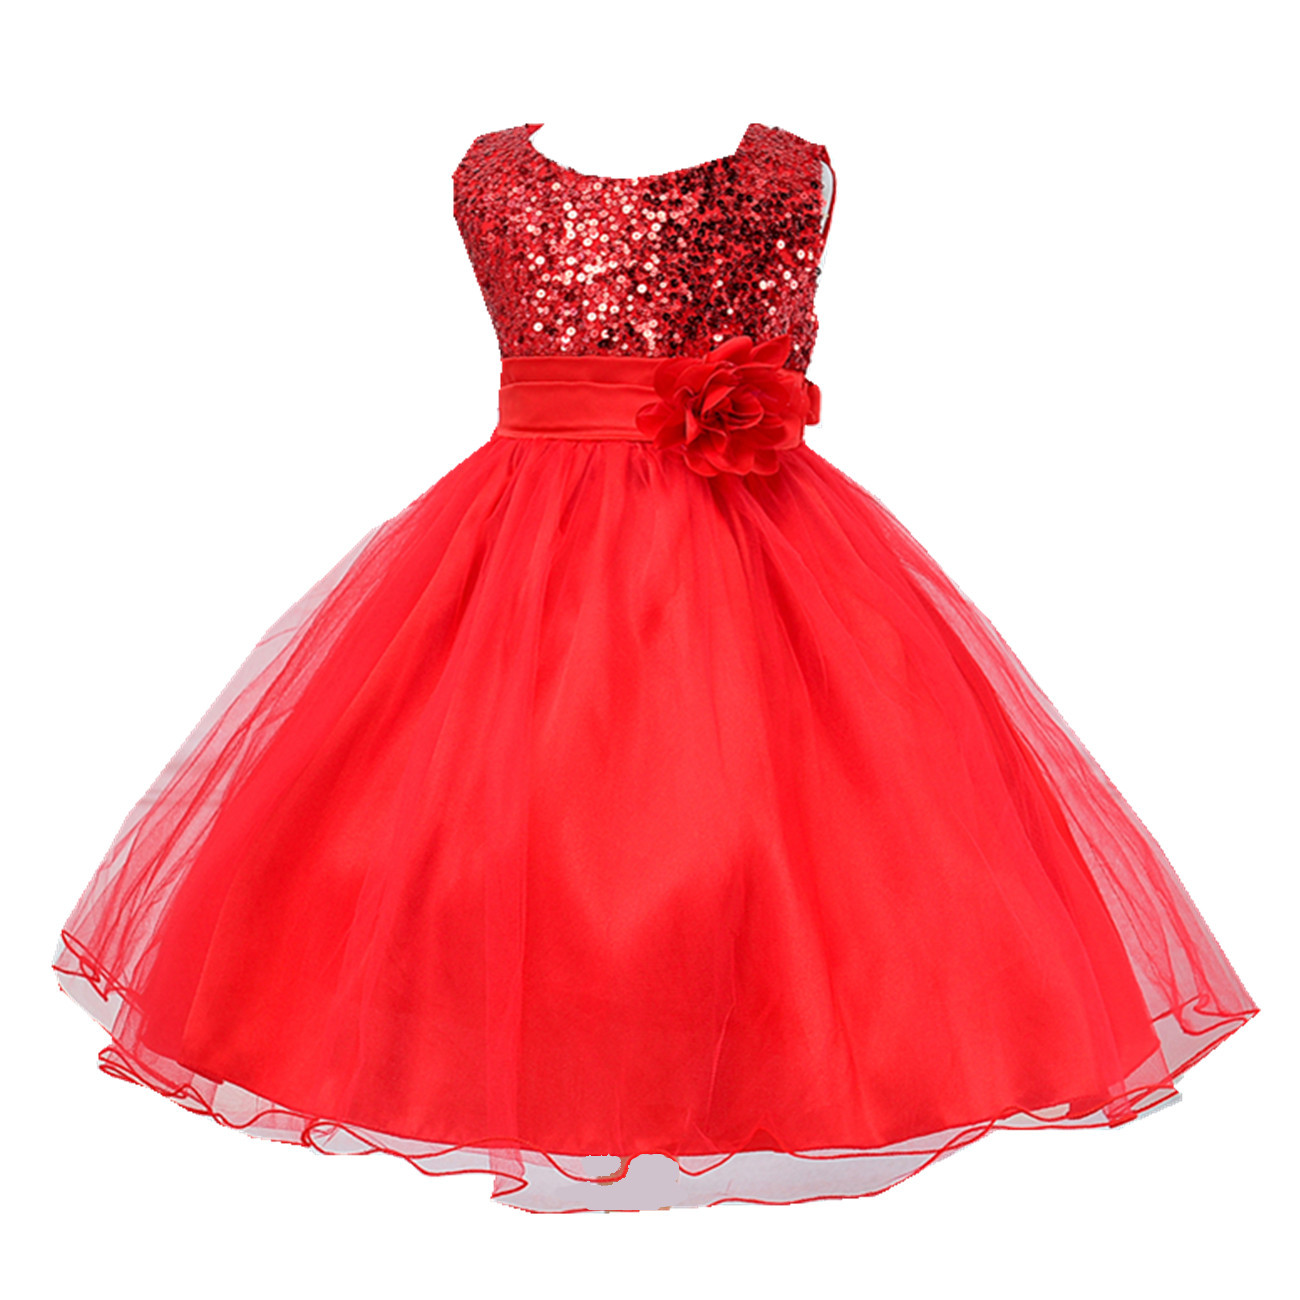 Christmas dress girls - Flower Girl Dress For Wedding Party Petals Tulle Dresses Teen Girls Clothes Children S Clothing Christmas Party